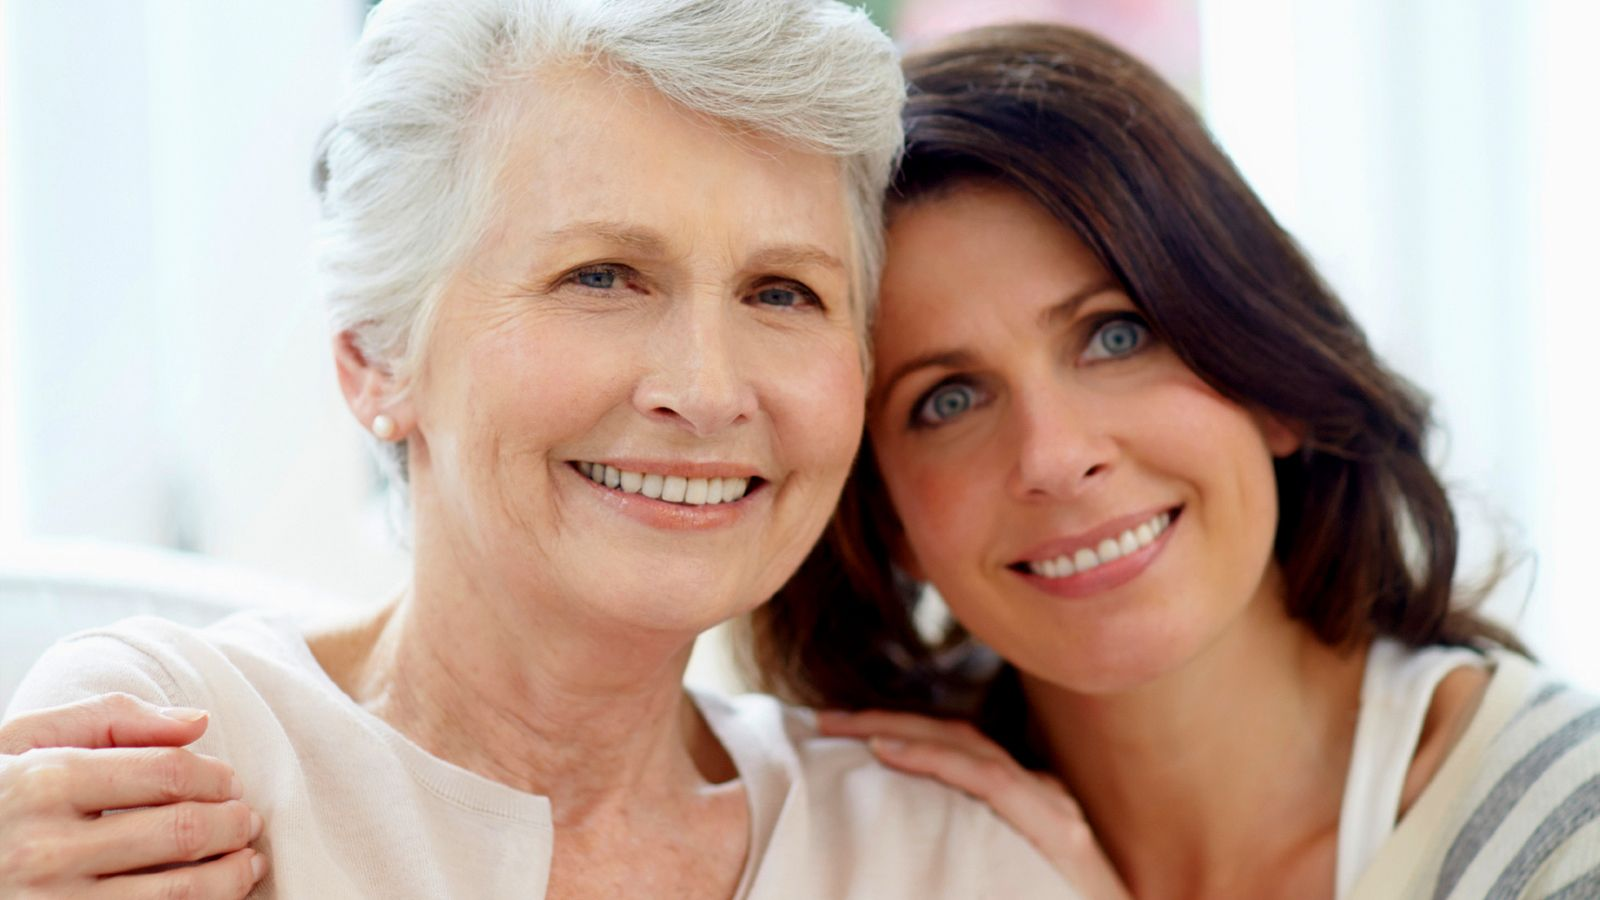 Medicare beneficiaries can switch plans and coverage